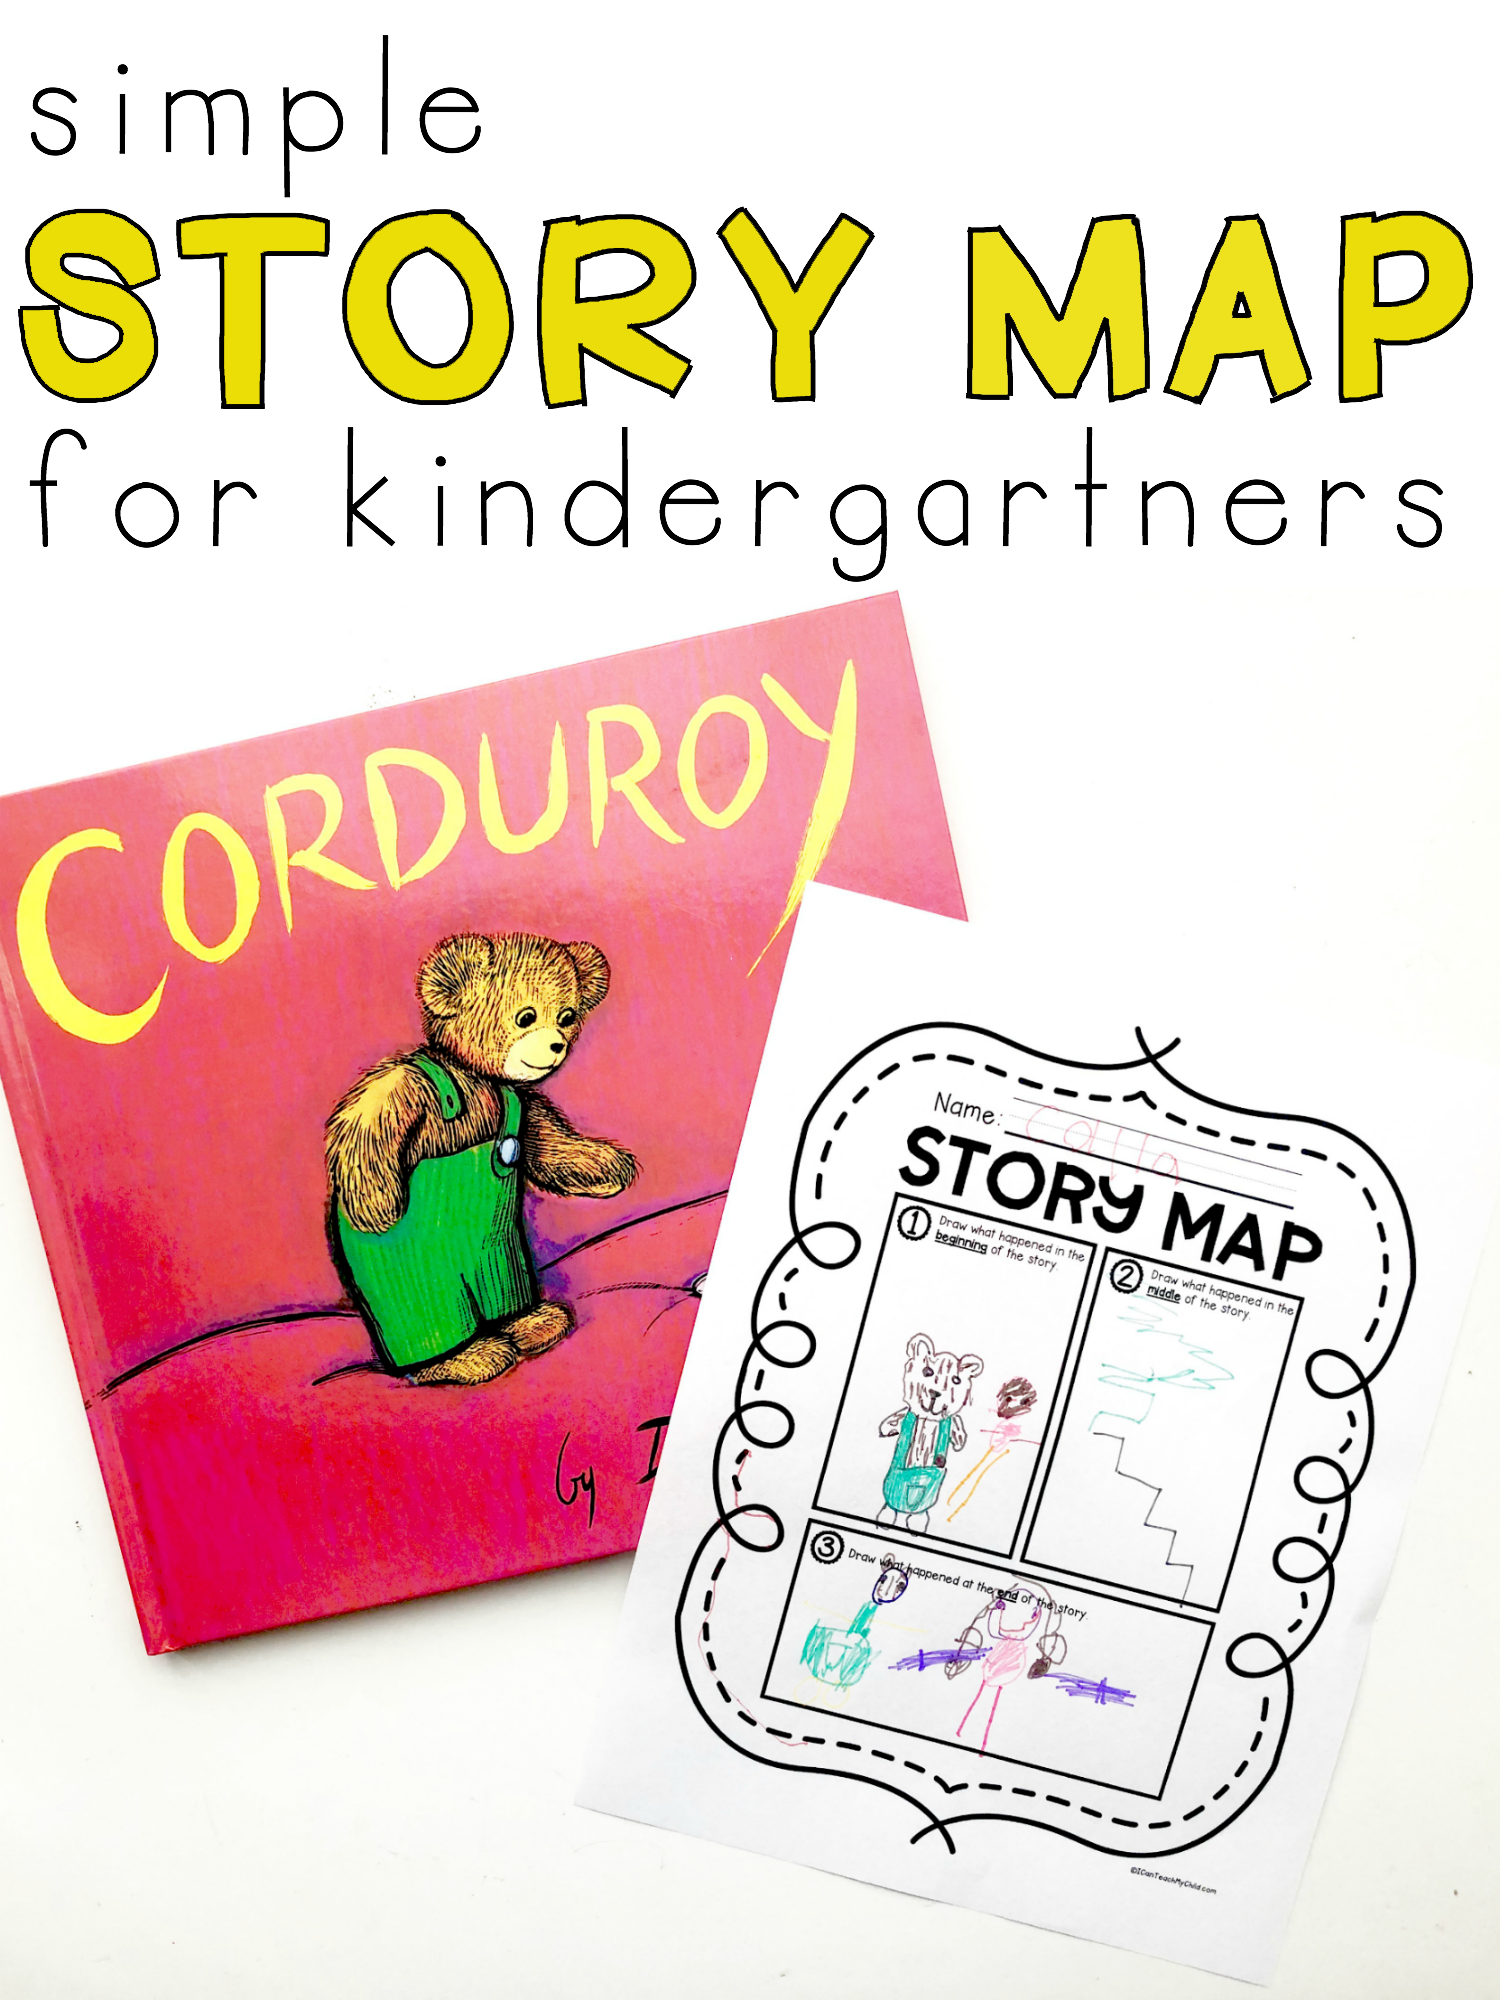 Simple Story Map Printable For Kindergartners